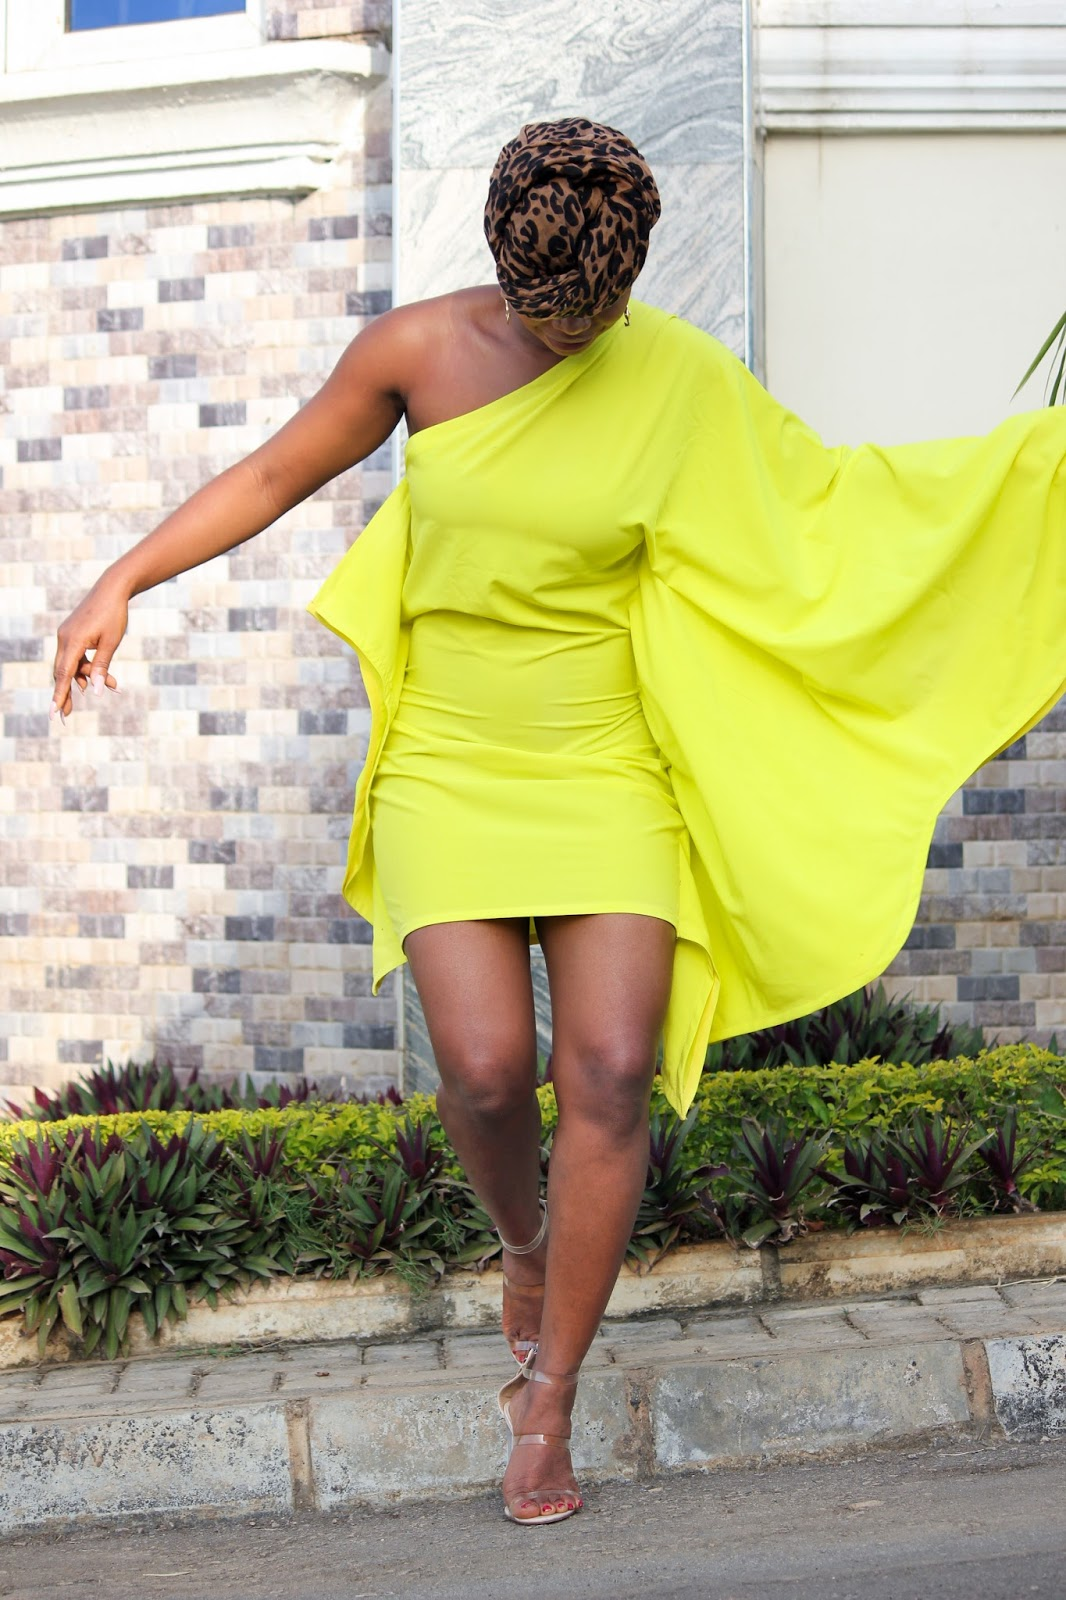 ONE SHOULDER DRESS - One Shoulder Bat-wing Style Dress in Neon from Porshher